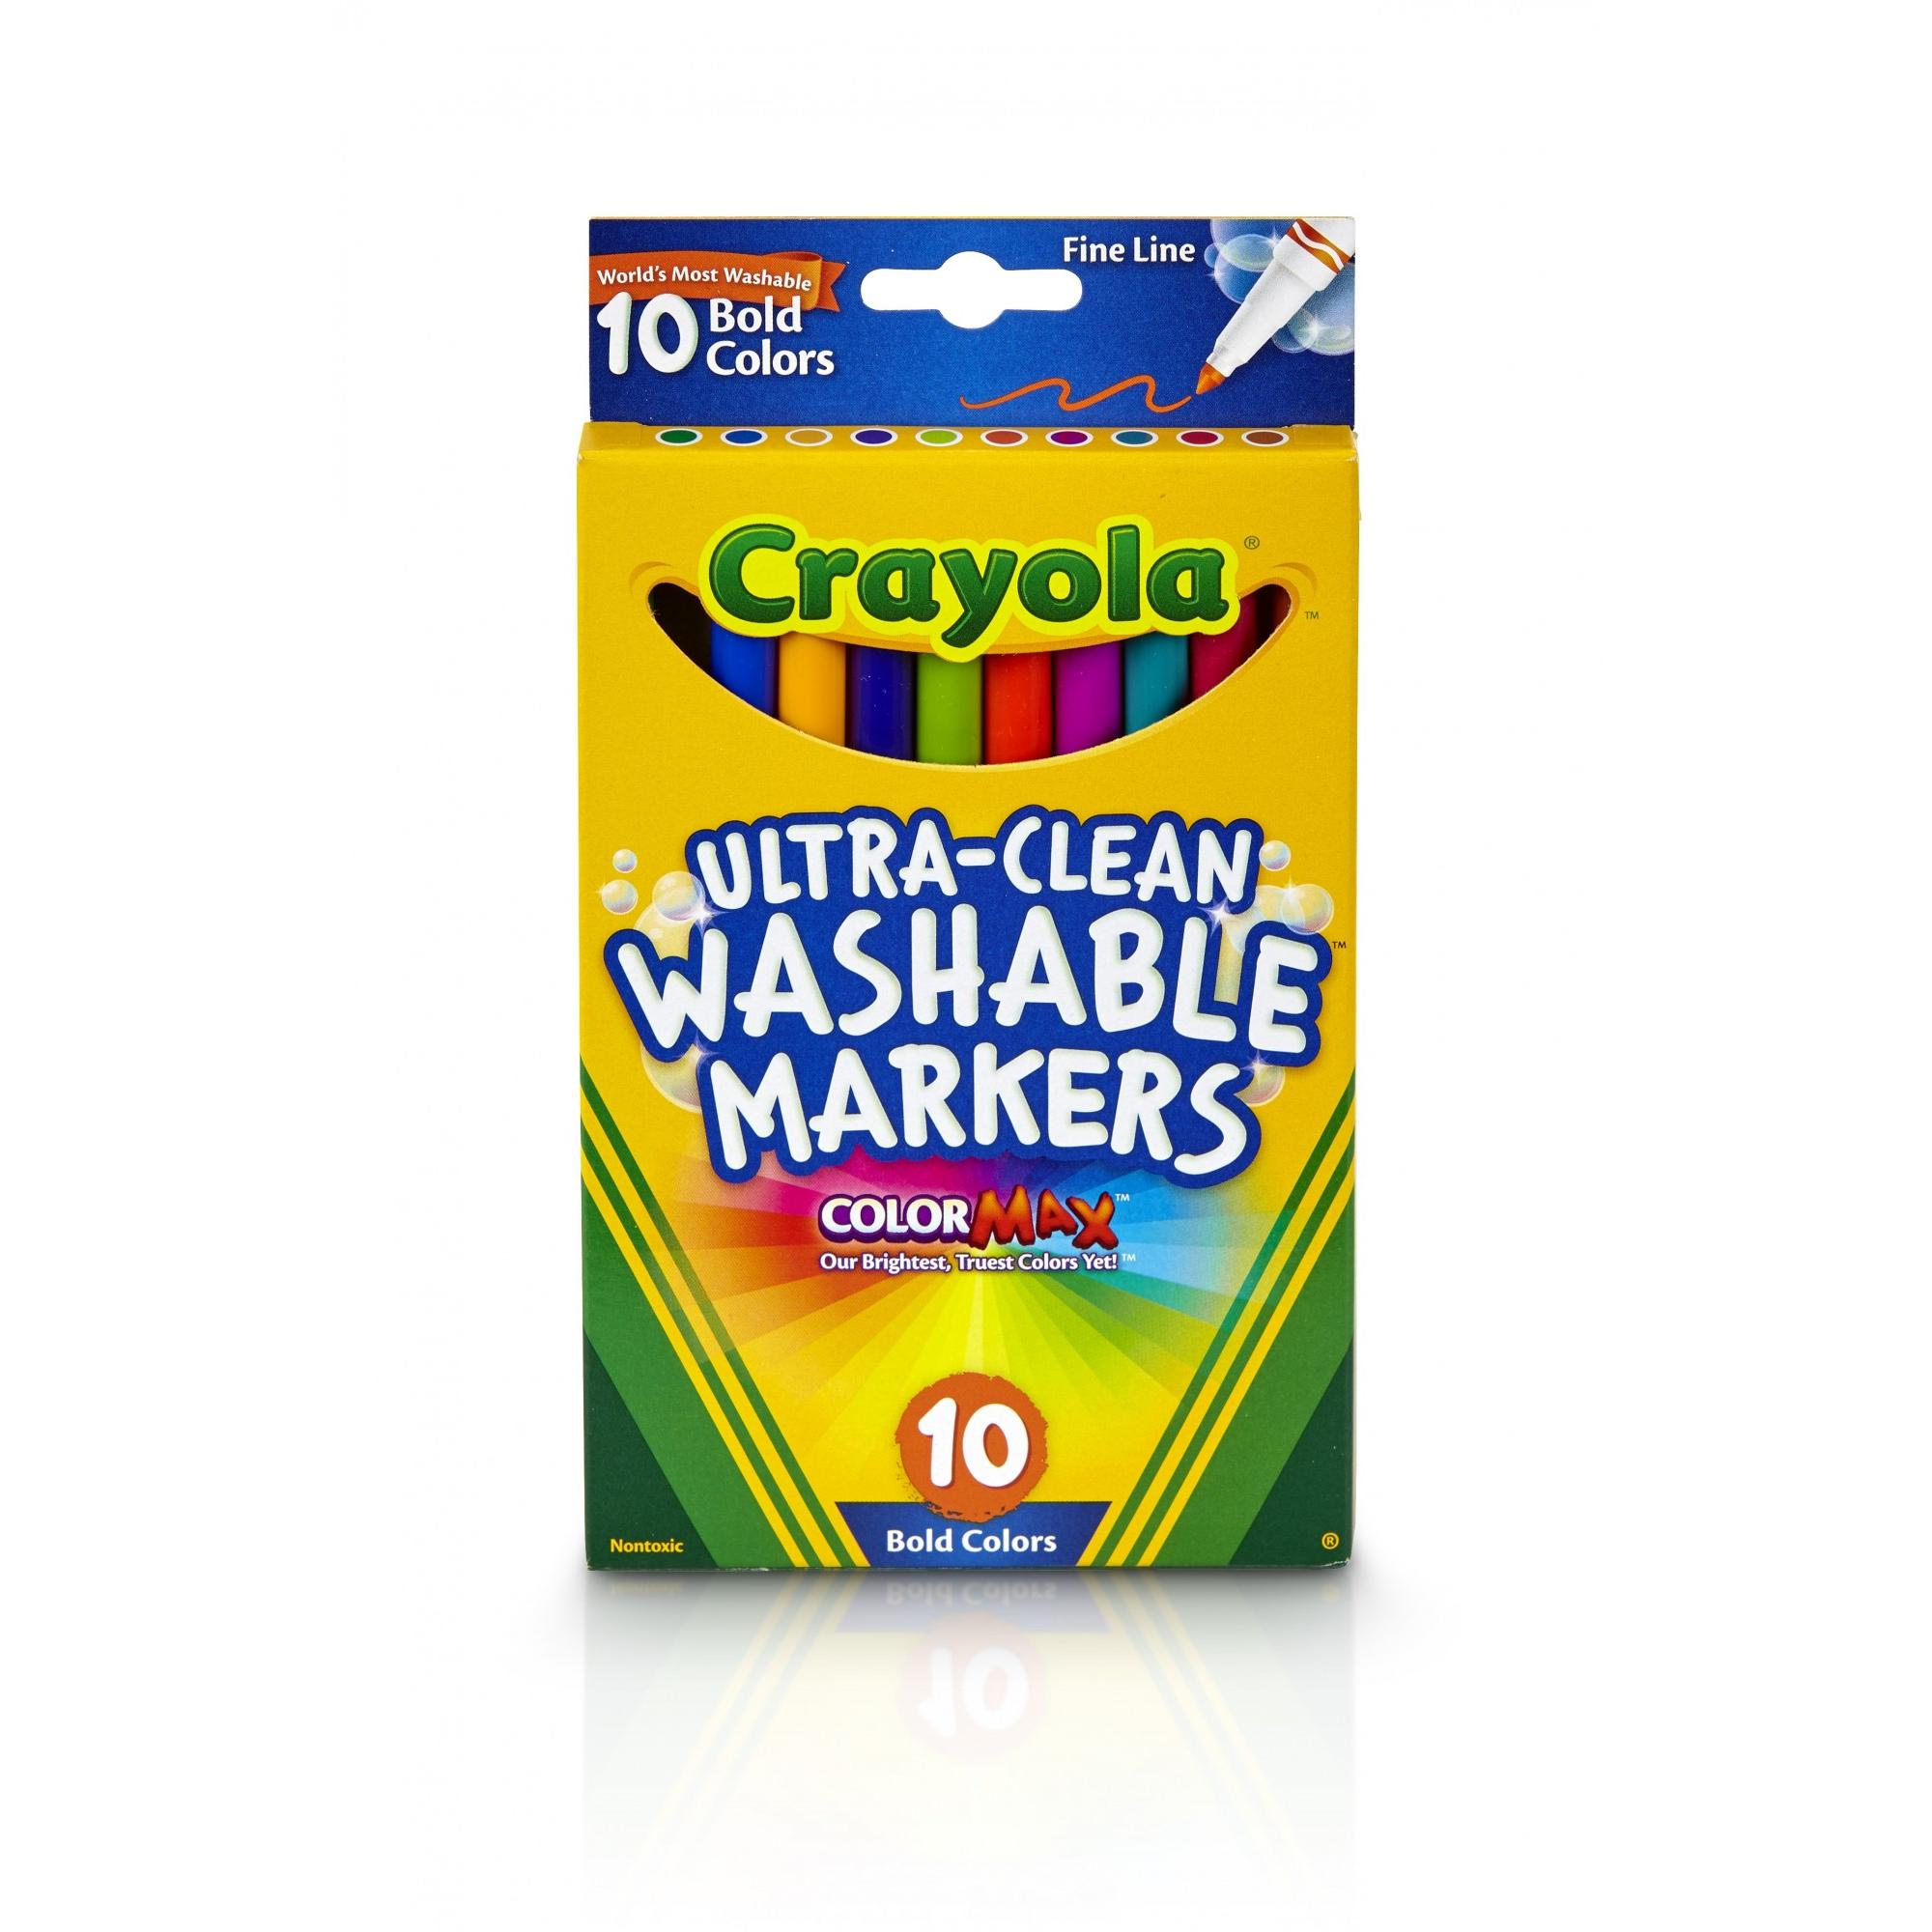 Crayola Ultra-Clean Bold Fine Line Marker, 10-Count by Crayola, a Hallmark Company